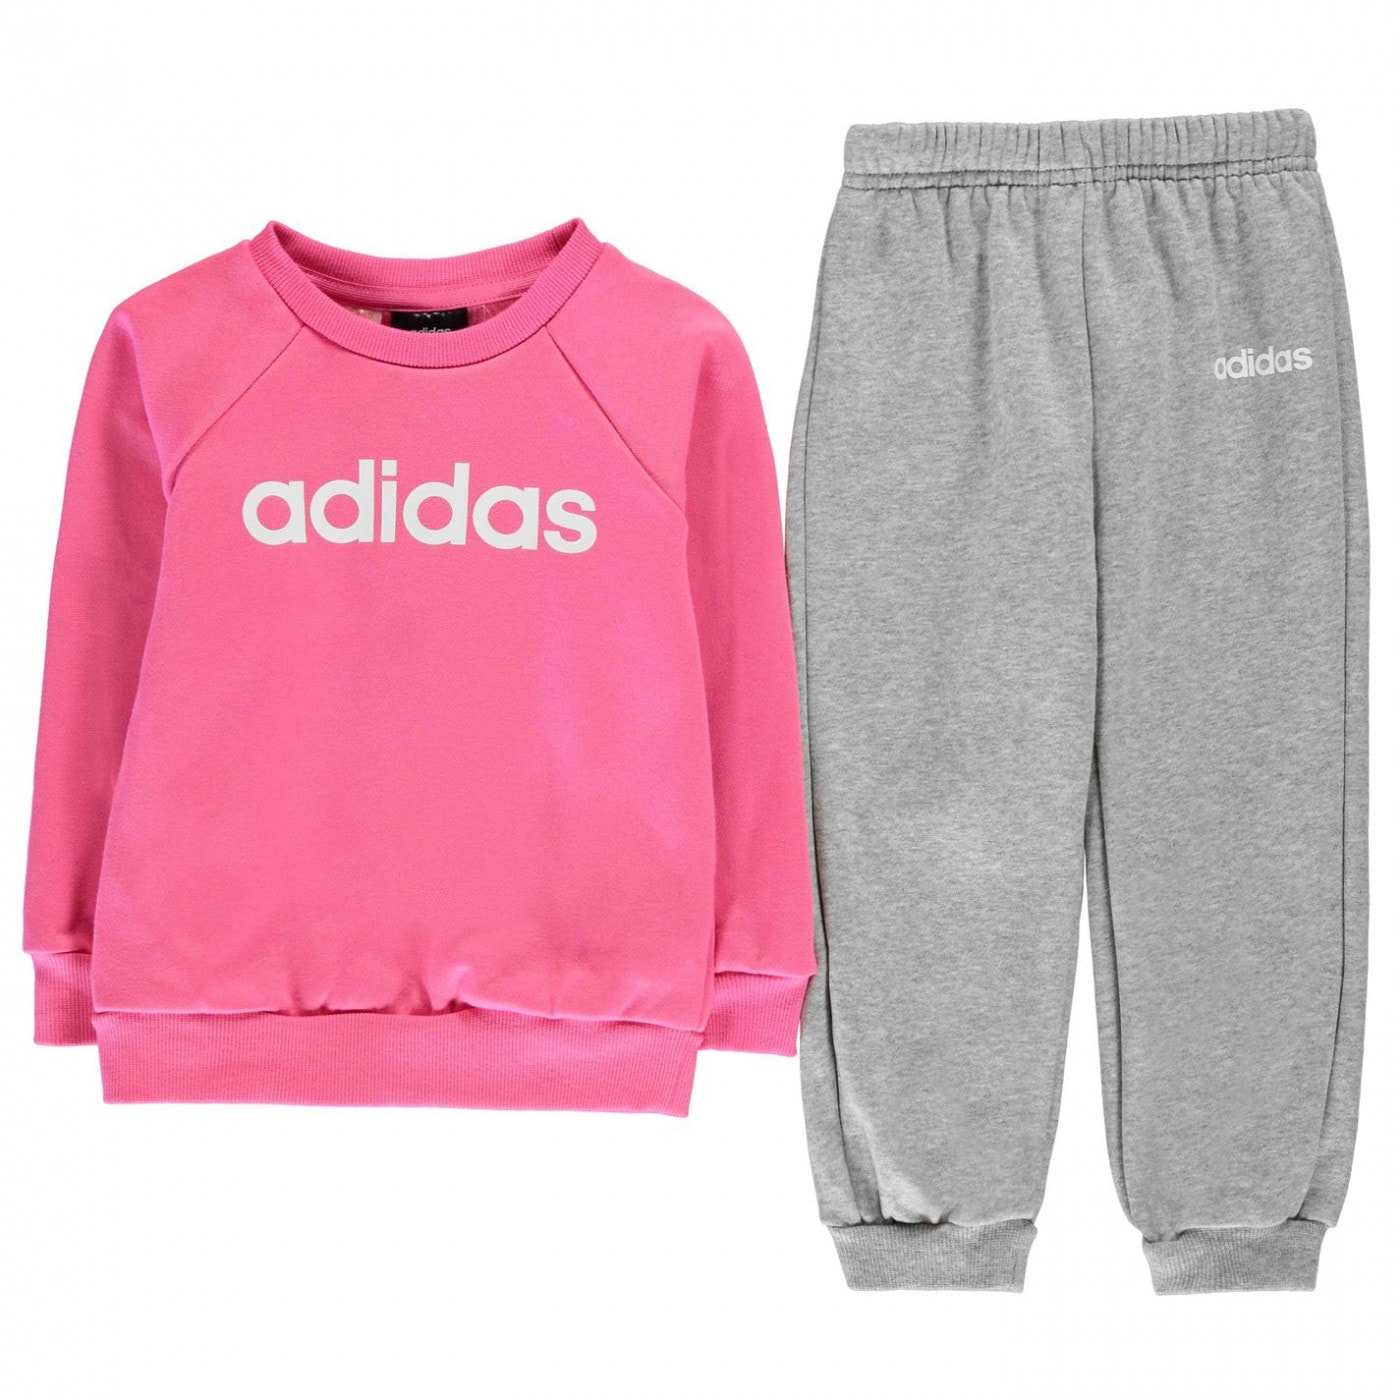 Adidas Jumper and Joggers Set Infant Girls